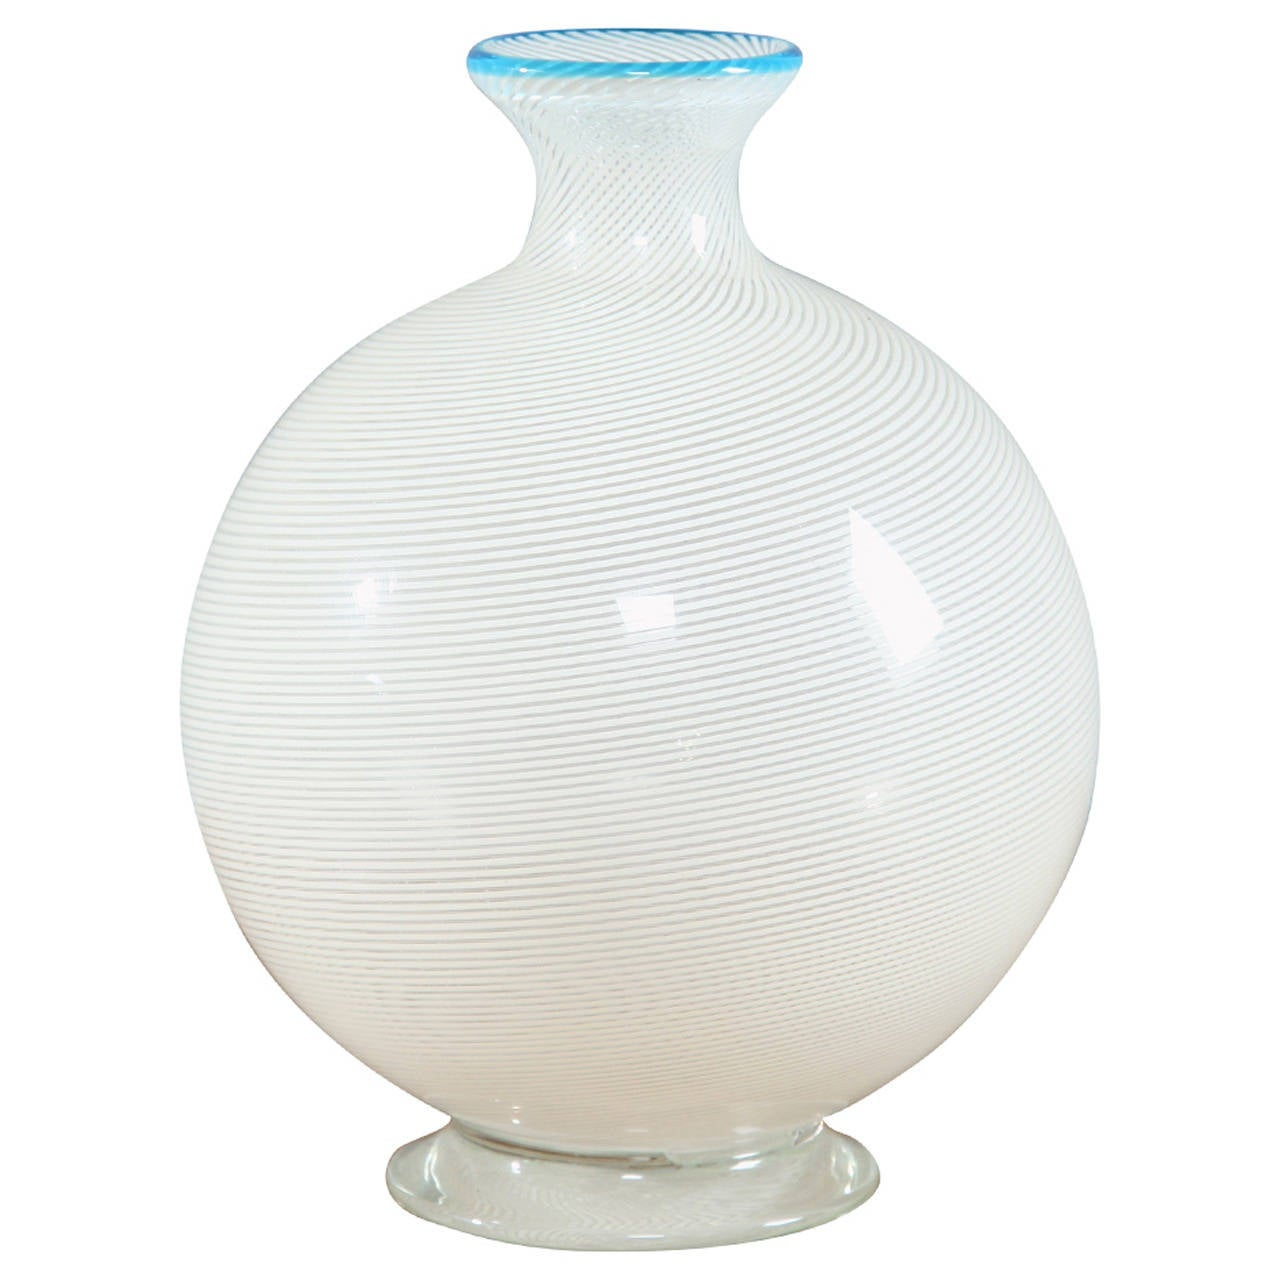 White and Turquoise Murano Glass Vase by Vistosi, Italy, 1950s